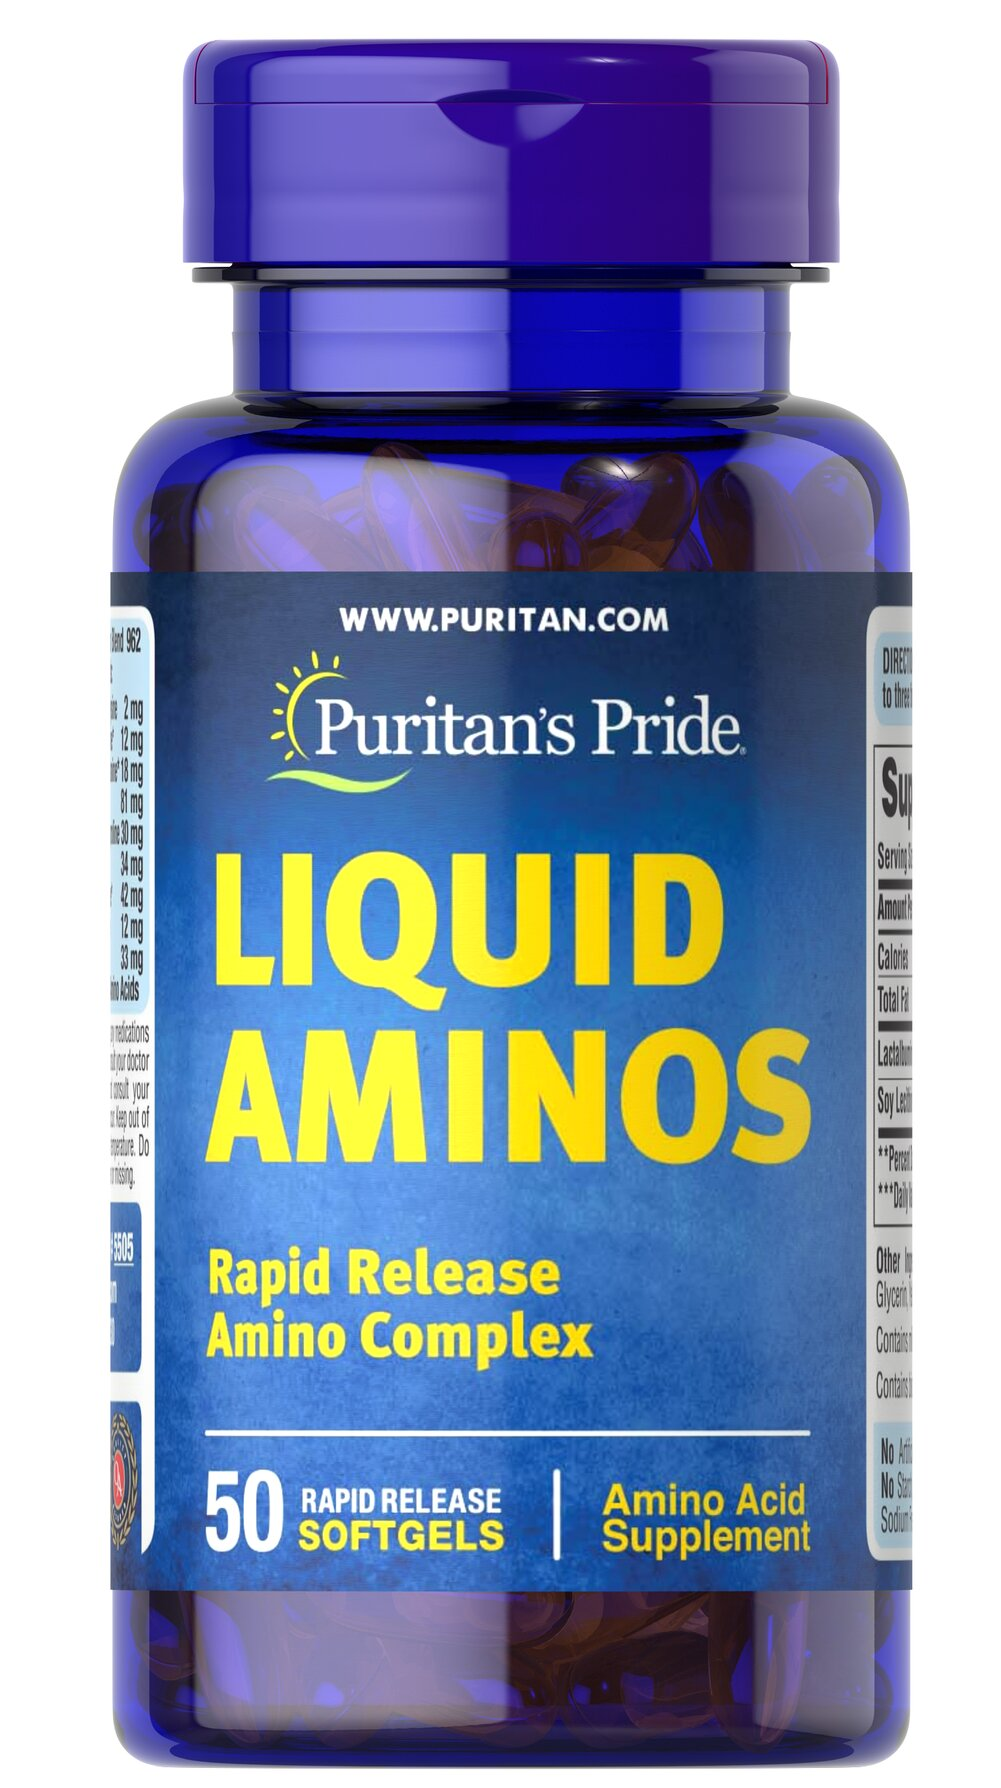 Liquid Aminos <p>Each Liquid Aminos softgel contains: L-Alanine (30 mg), L-Arginine (54 mg), L-Aspartic Acid (83 mg), L-Cysteine (10 mg), L-Glutamic Acid (145 mg), L-Glycine (33 mg),  L-Histidine (20 mg), L-Isoleucine (35 mg), L-Leucine (60 mg), L-Lysine (59 mg), L-Methionine (9 mg), L-Phenylalanine (41 mg), L-Proline (38 mg), L-Serine (39 mg), L-Threonine (32 mg), L-Tyrosine (22 mg), and L-Valine (33 mg)</p> 50 Softgels  $12.99